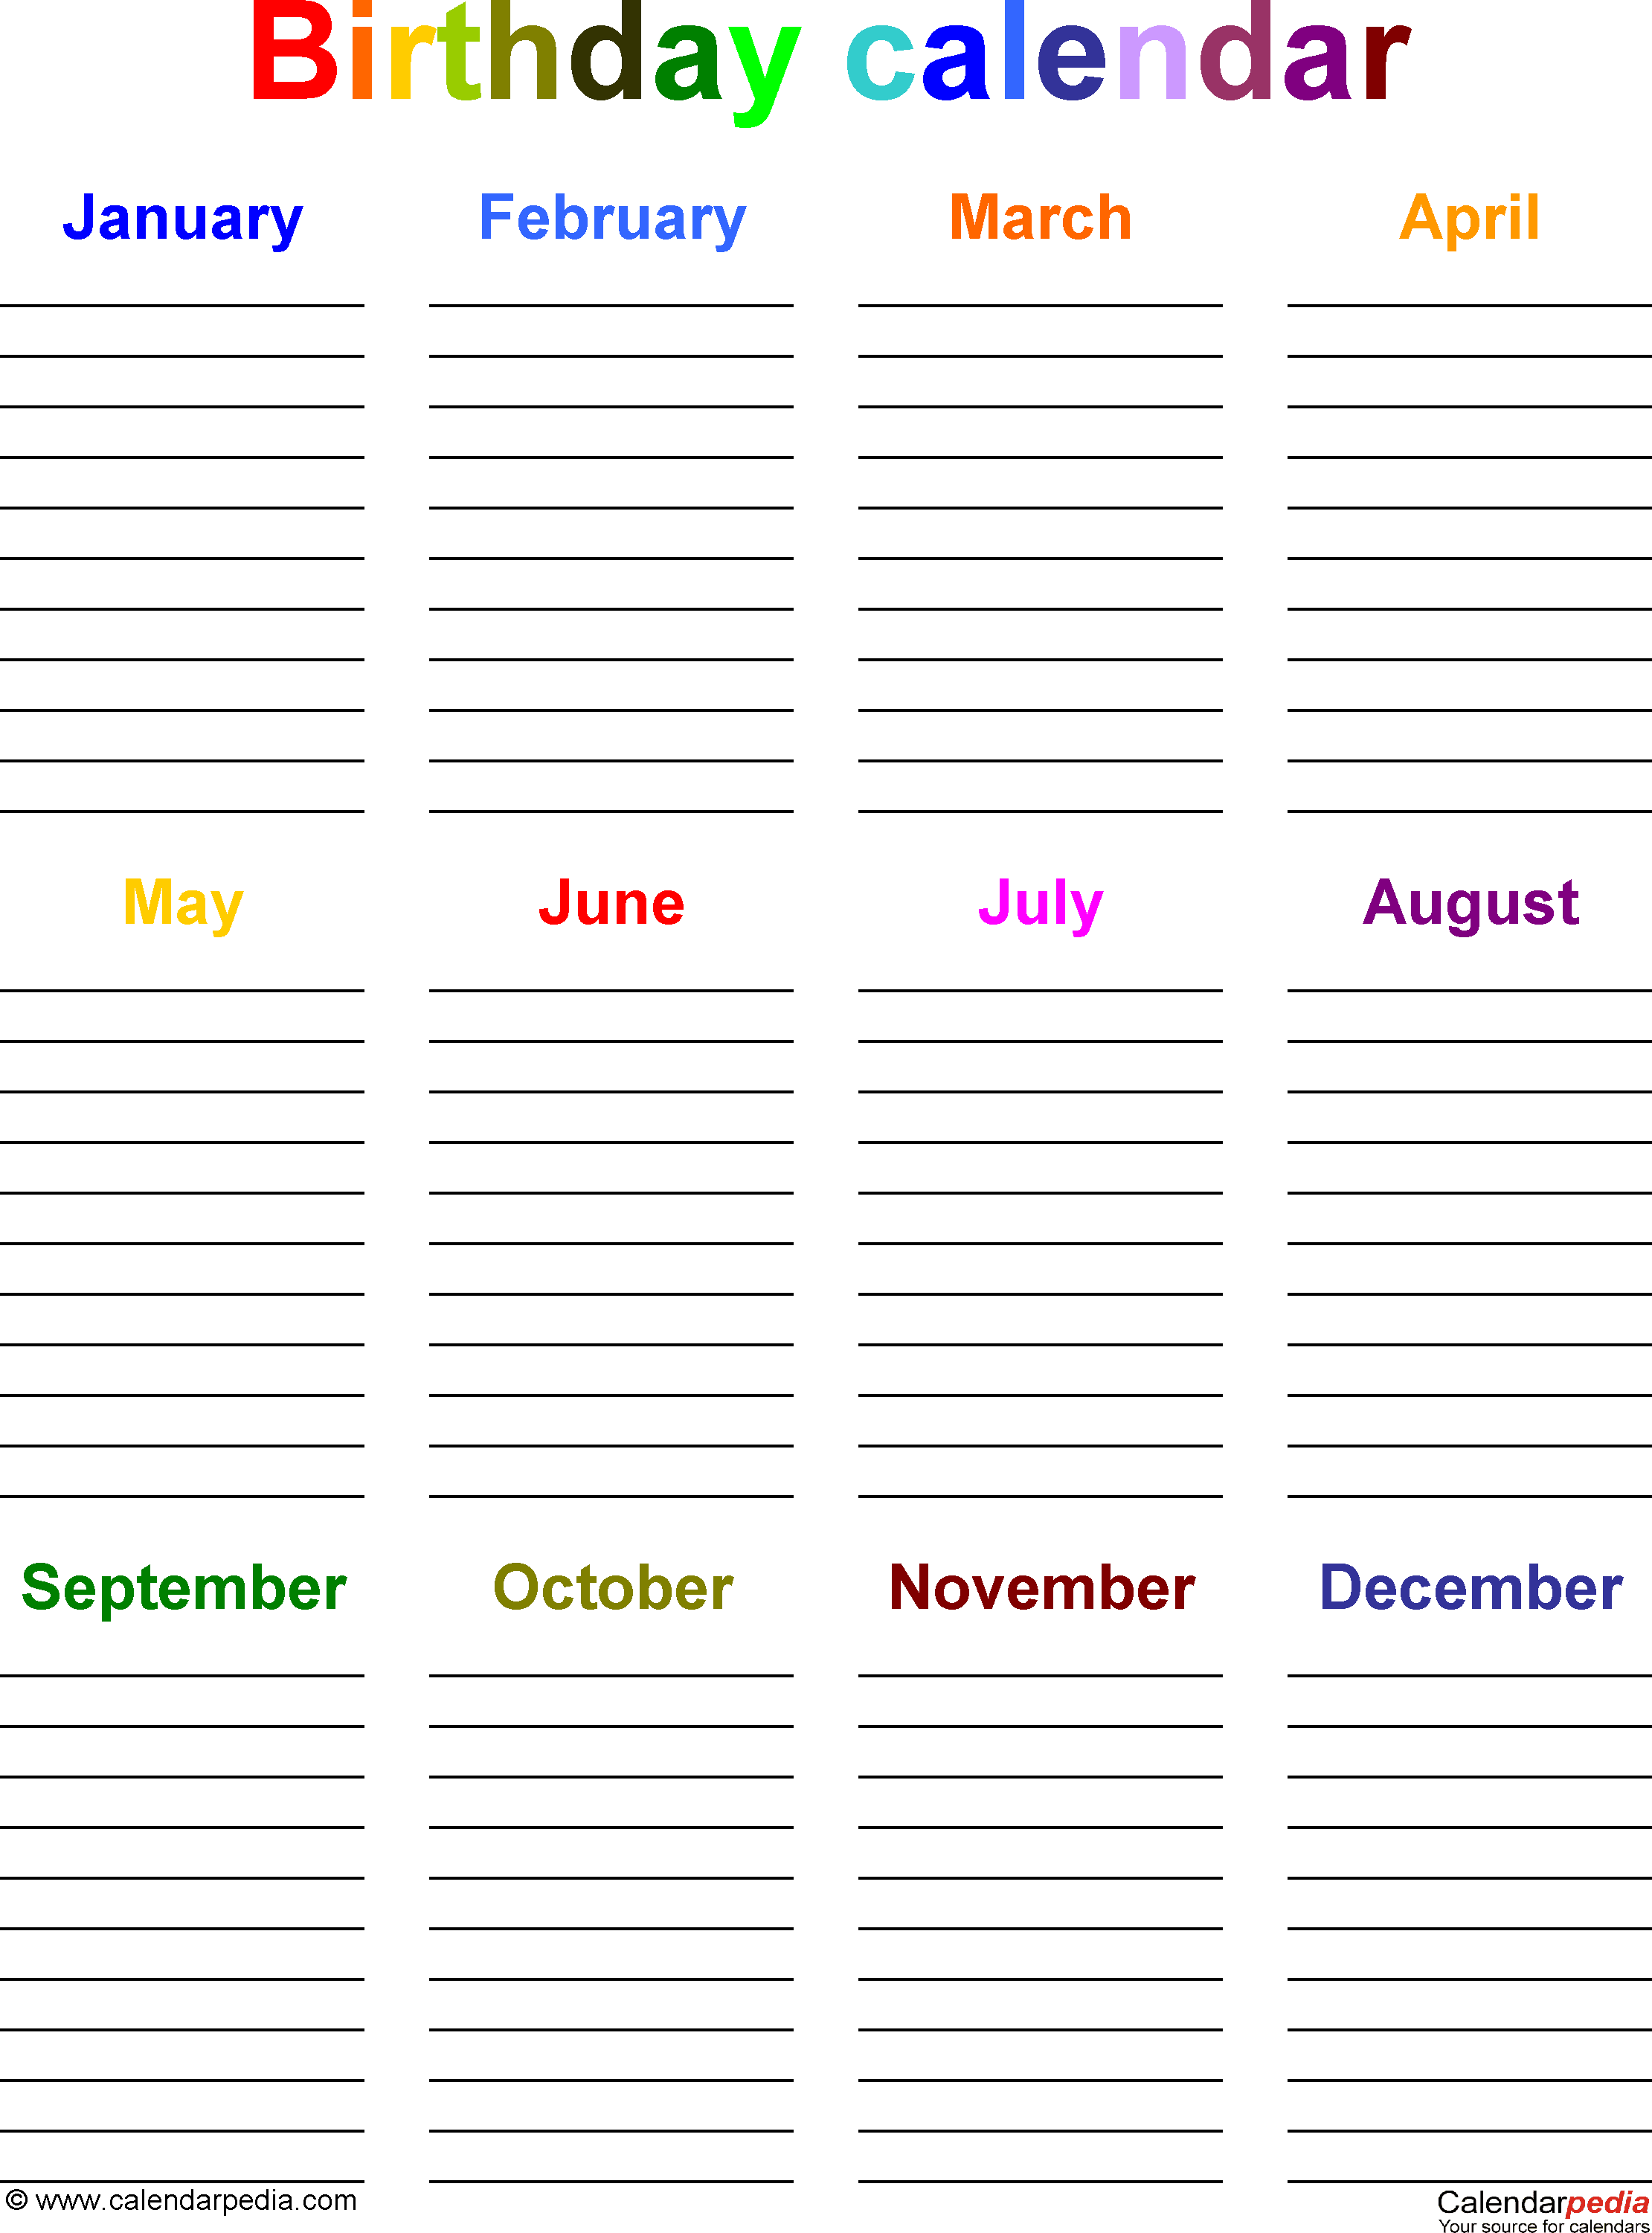 Birthday List Template Free Template 5 Pdf Template For Birthday Calendar In Color Portrait .